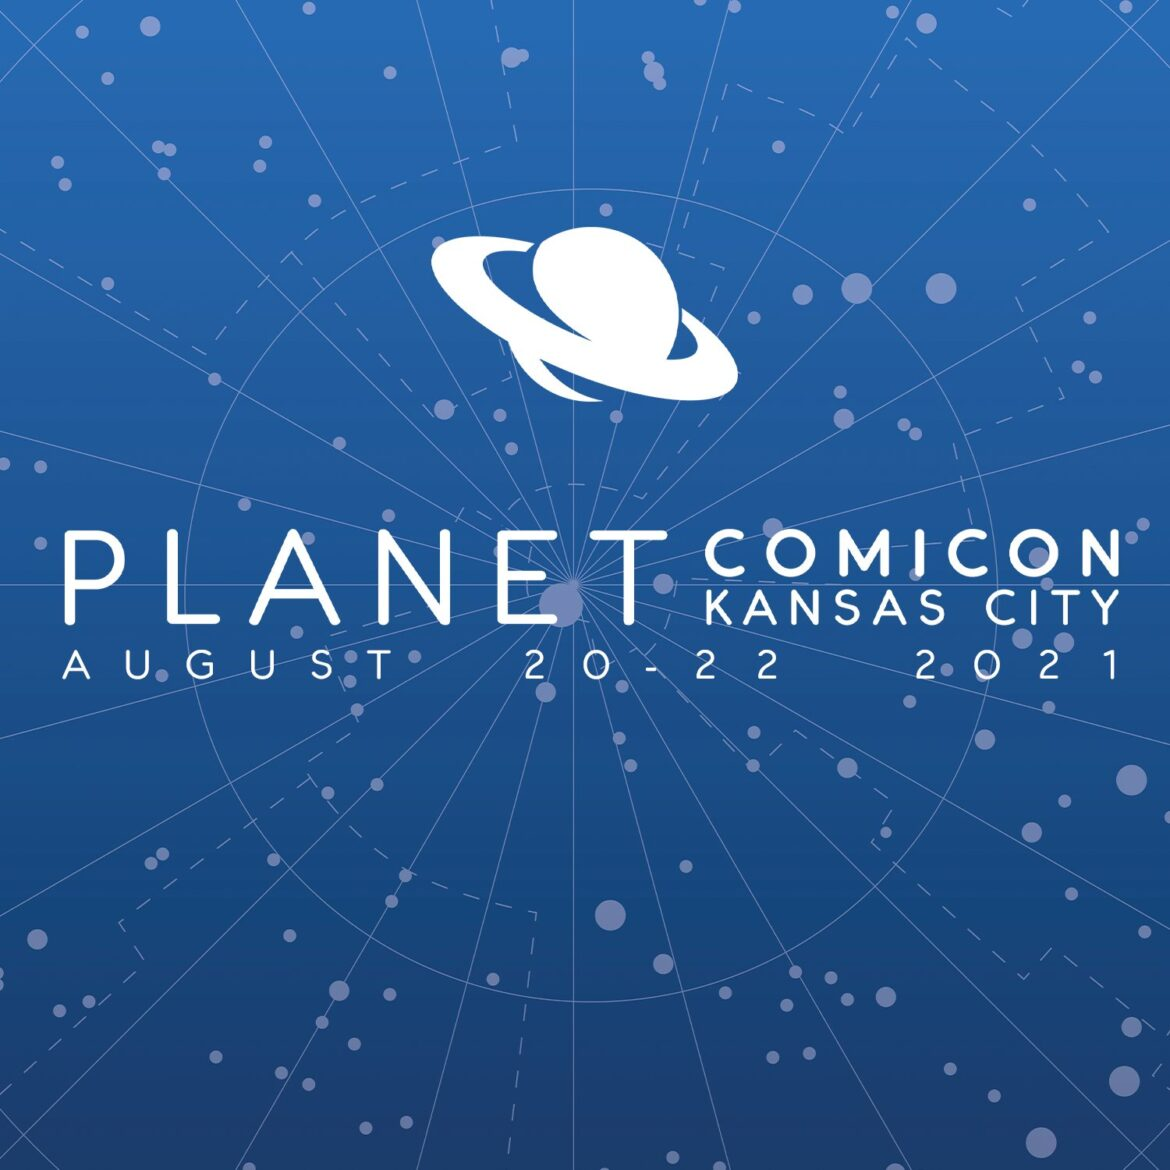 Planet Comicon Kansas City 2021 Delayed Until August